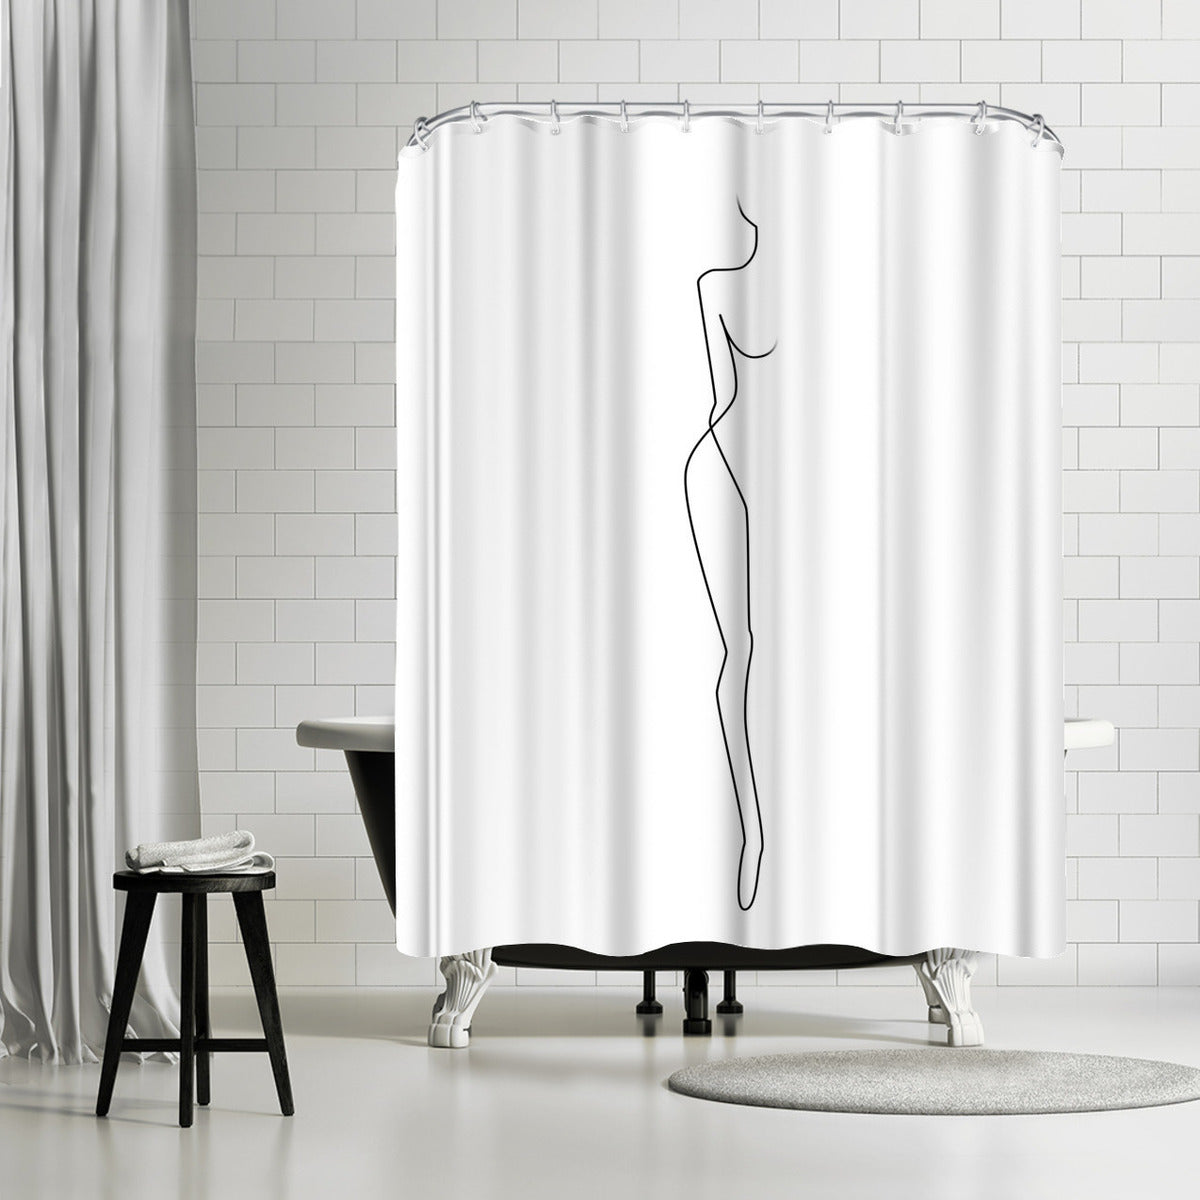 Her by Explicit Design Shower Curtain - Shower Curtain - Americanflat